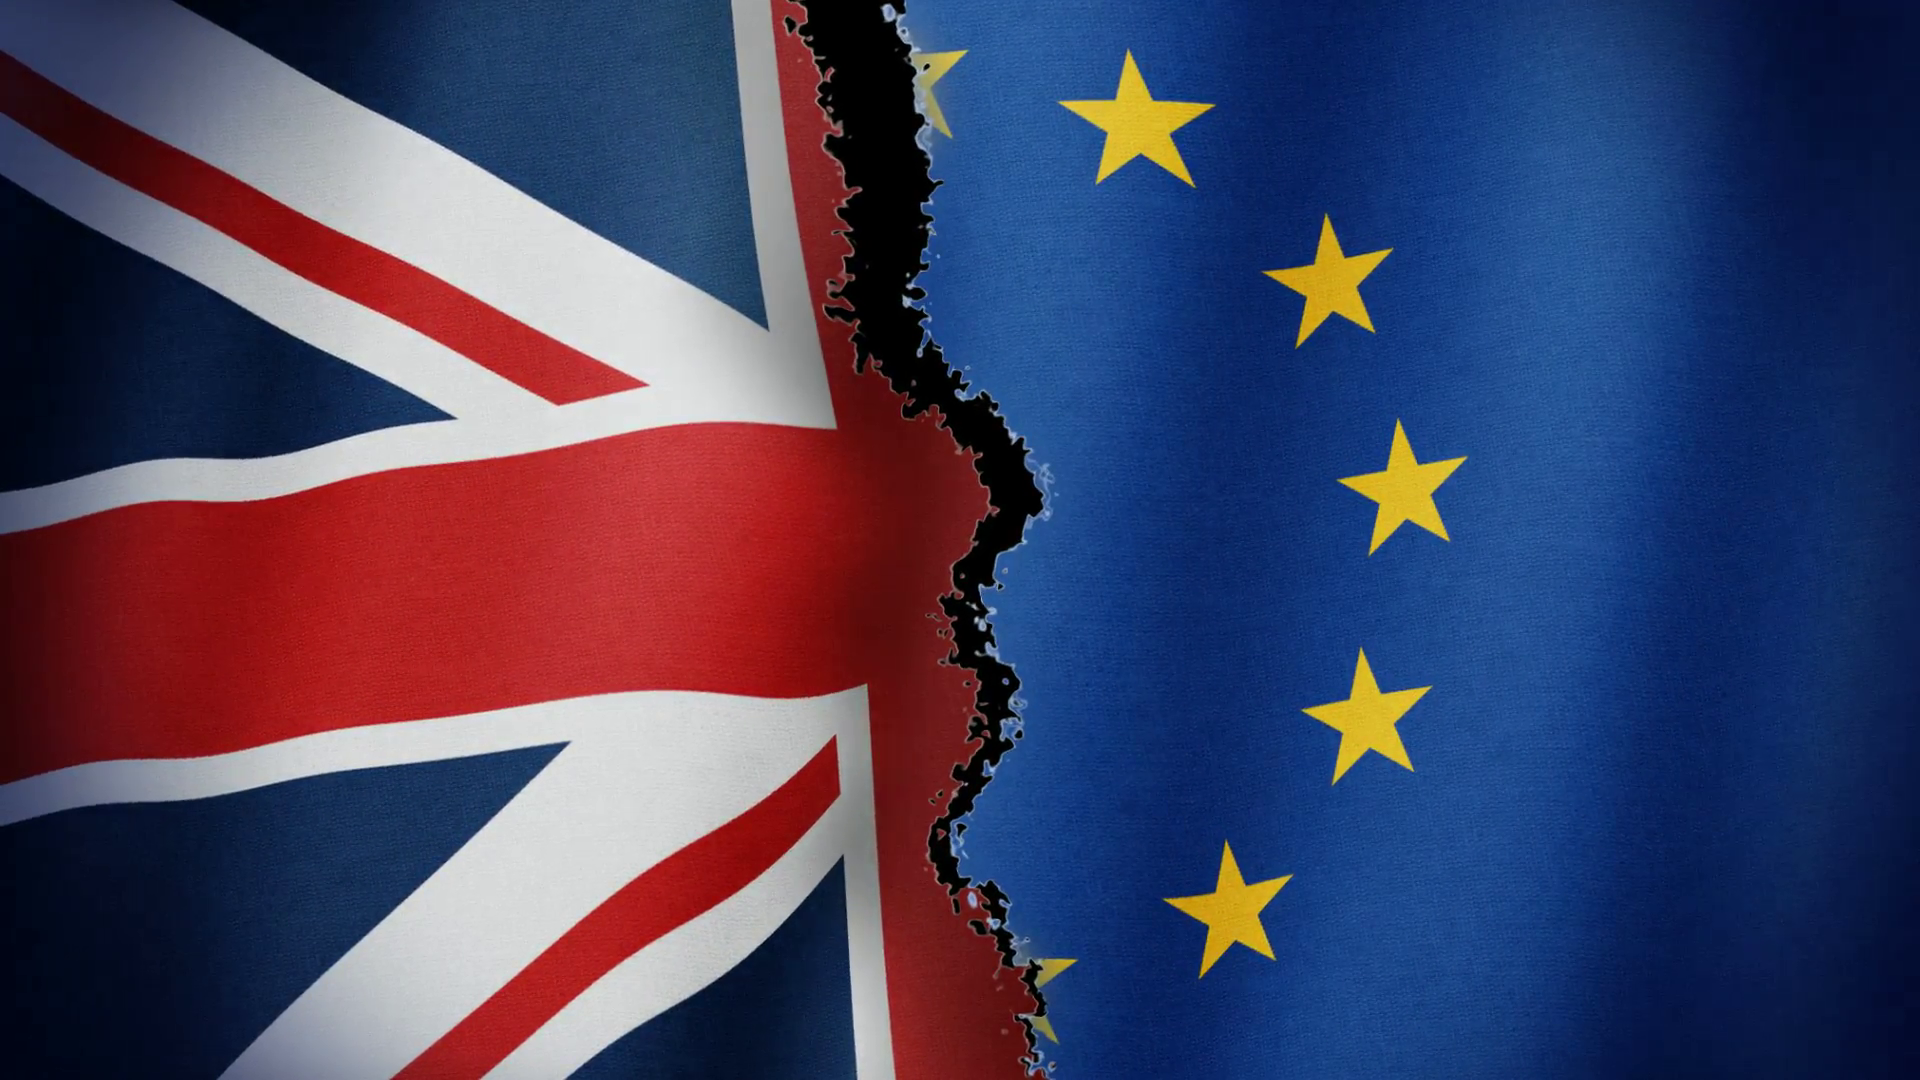 KU backs campaign to protect the Erasmus+ programme after Brexit